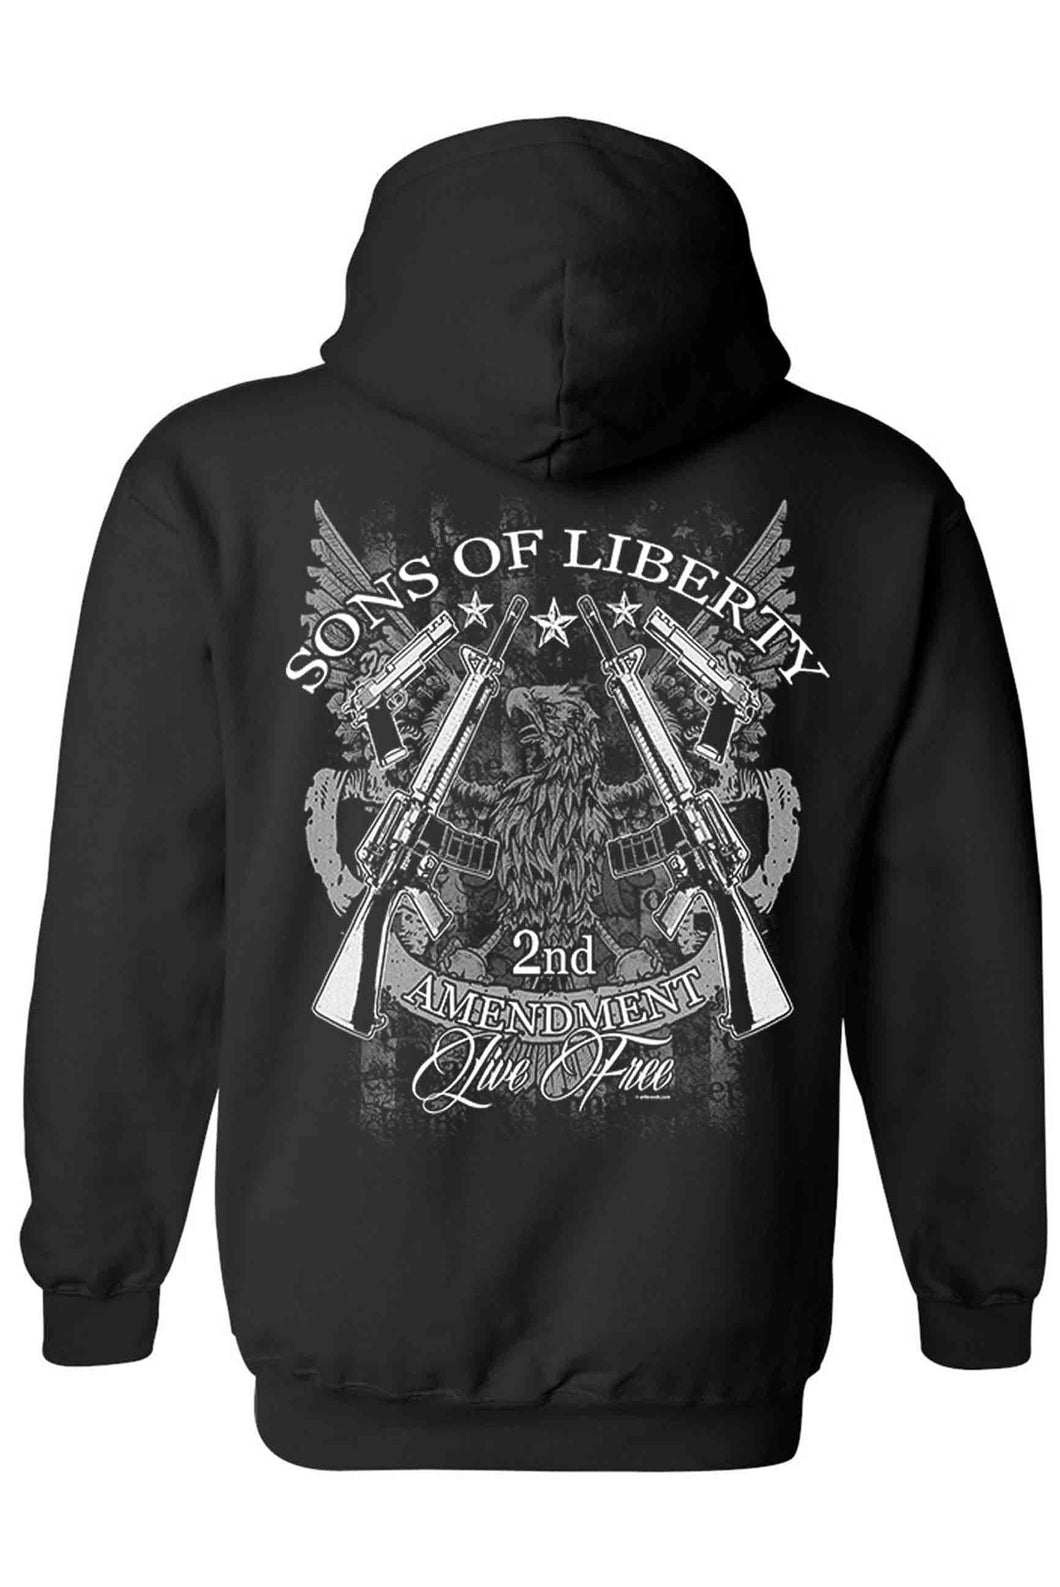 Shore Trendz Men's Hoodie BLACK / 3XL Sons of Liberty 2nd Amendment Unisex Zip Up Hoodie (3 Variants)